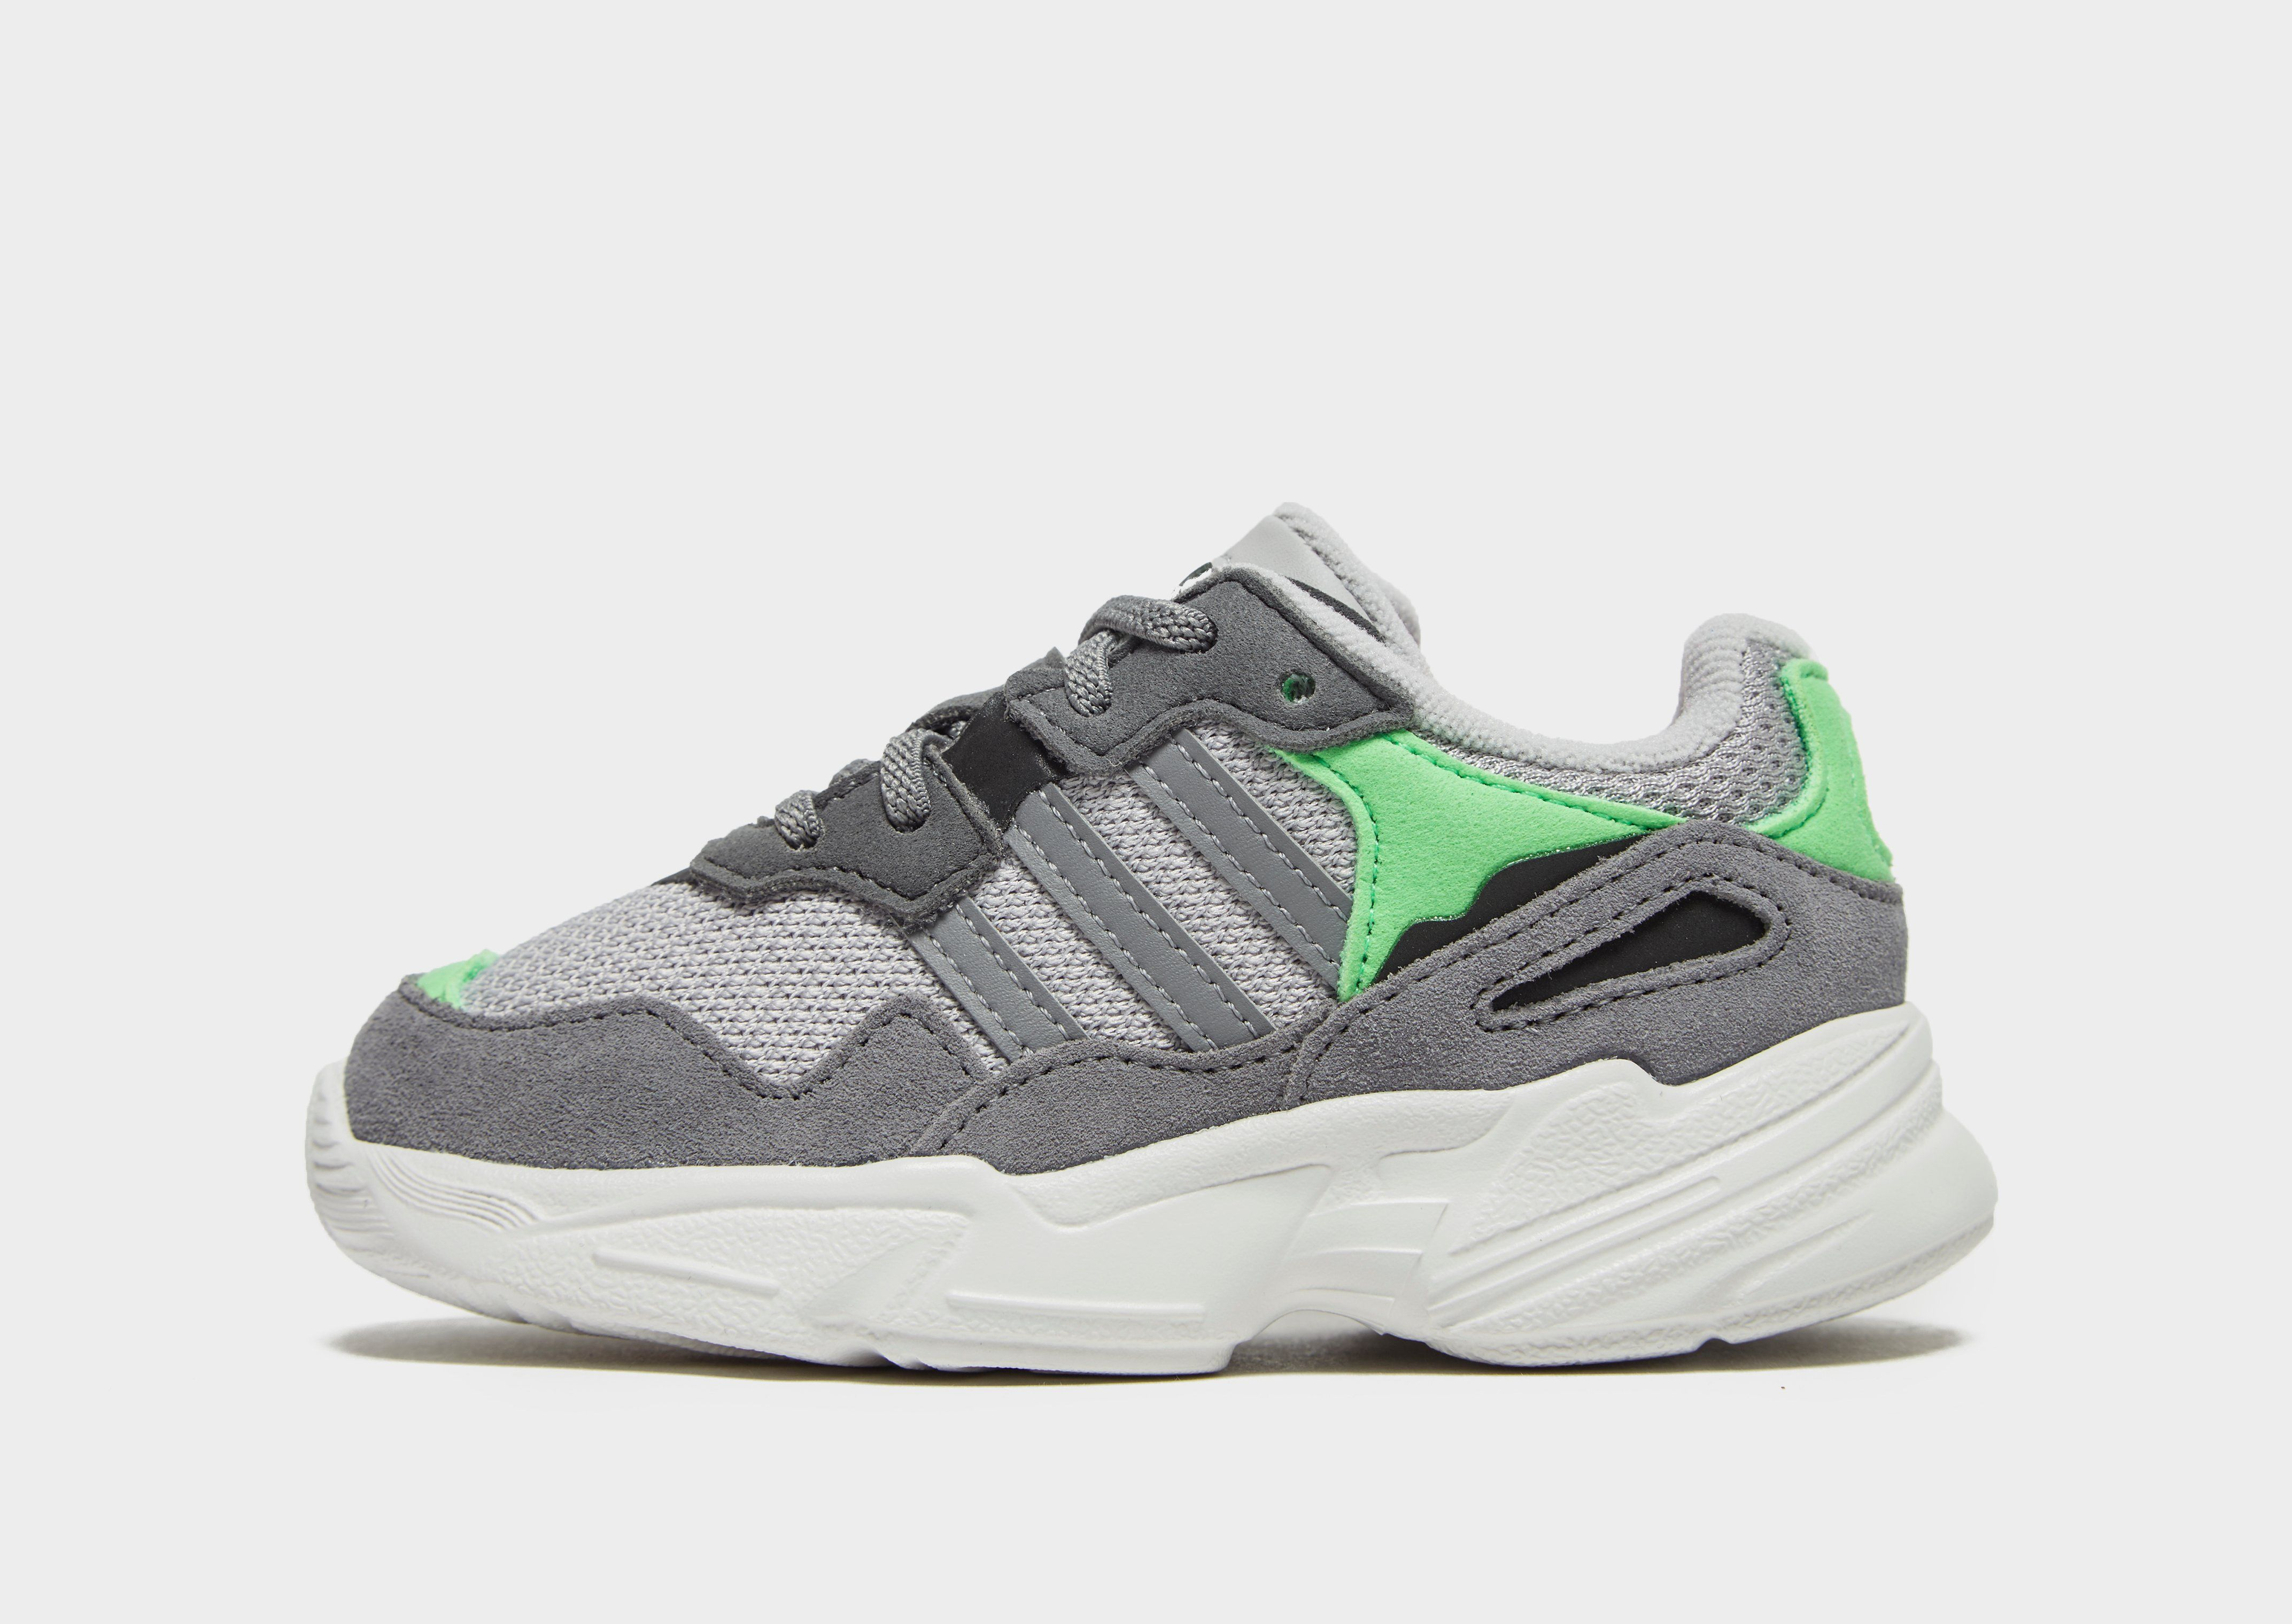 size 40 1b9aa ab6d3 adidas Originals Yung 96 Infant   JD Sports Ireland